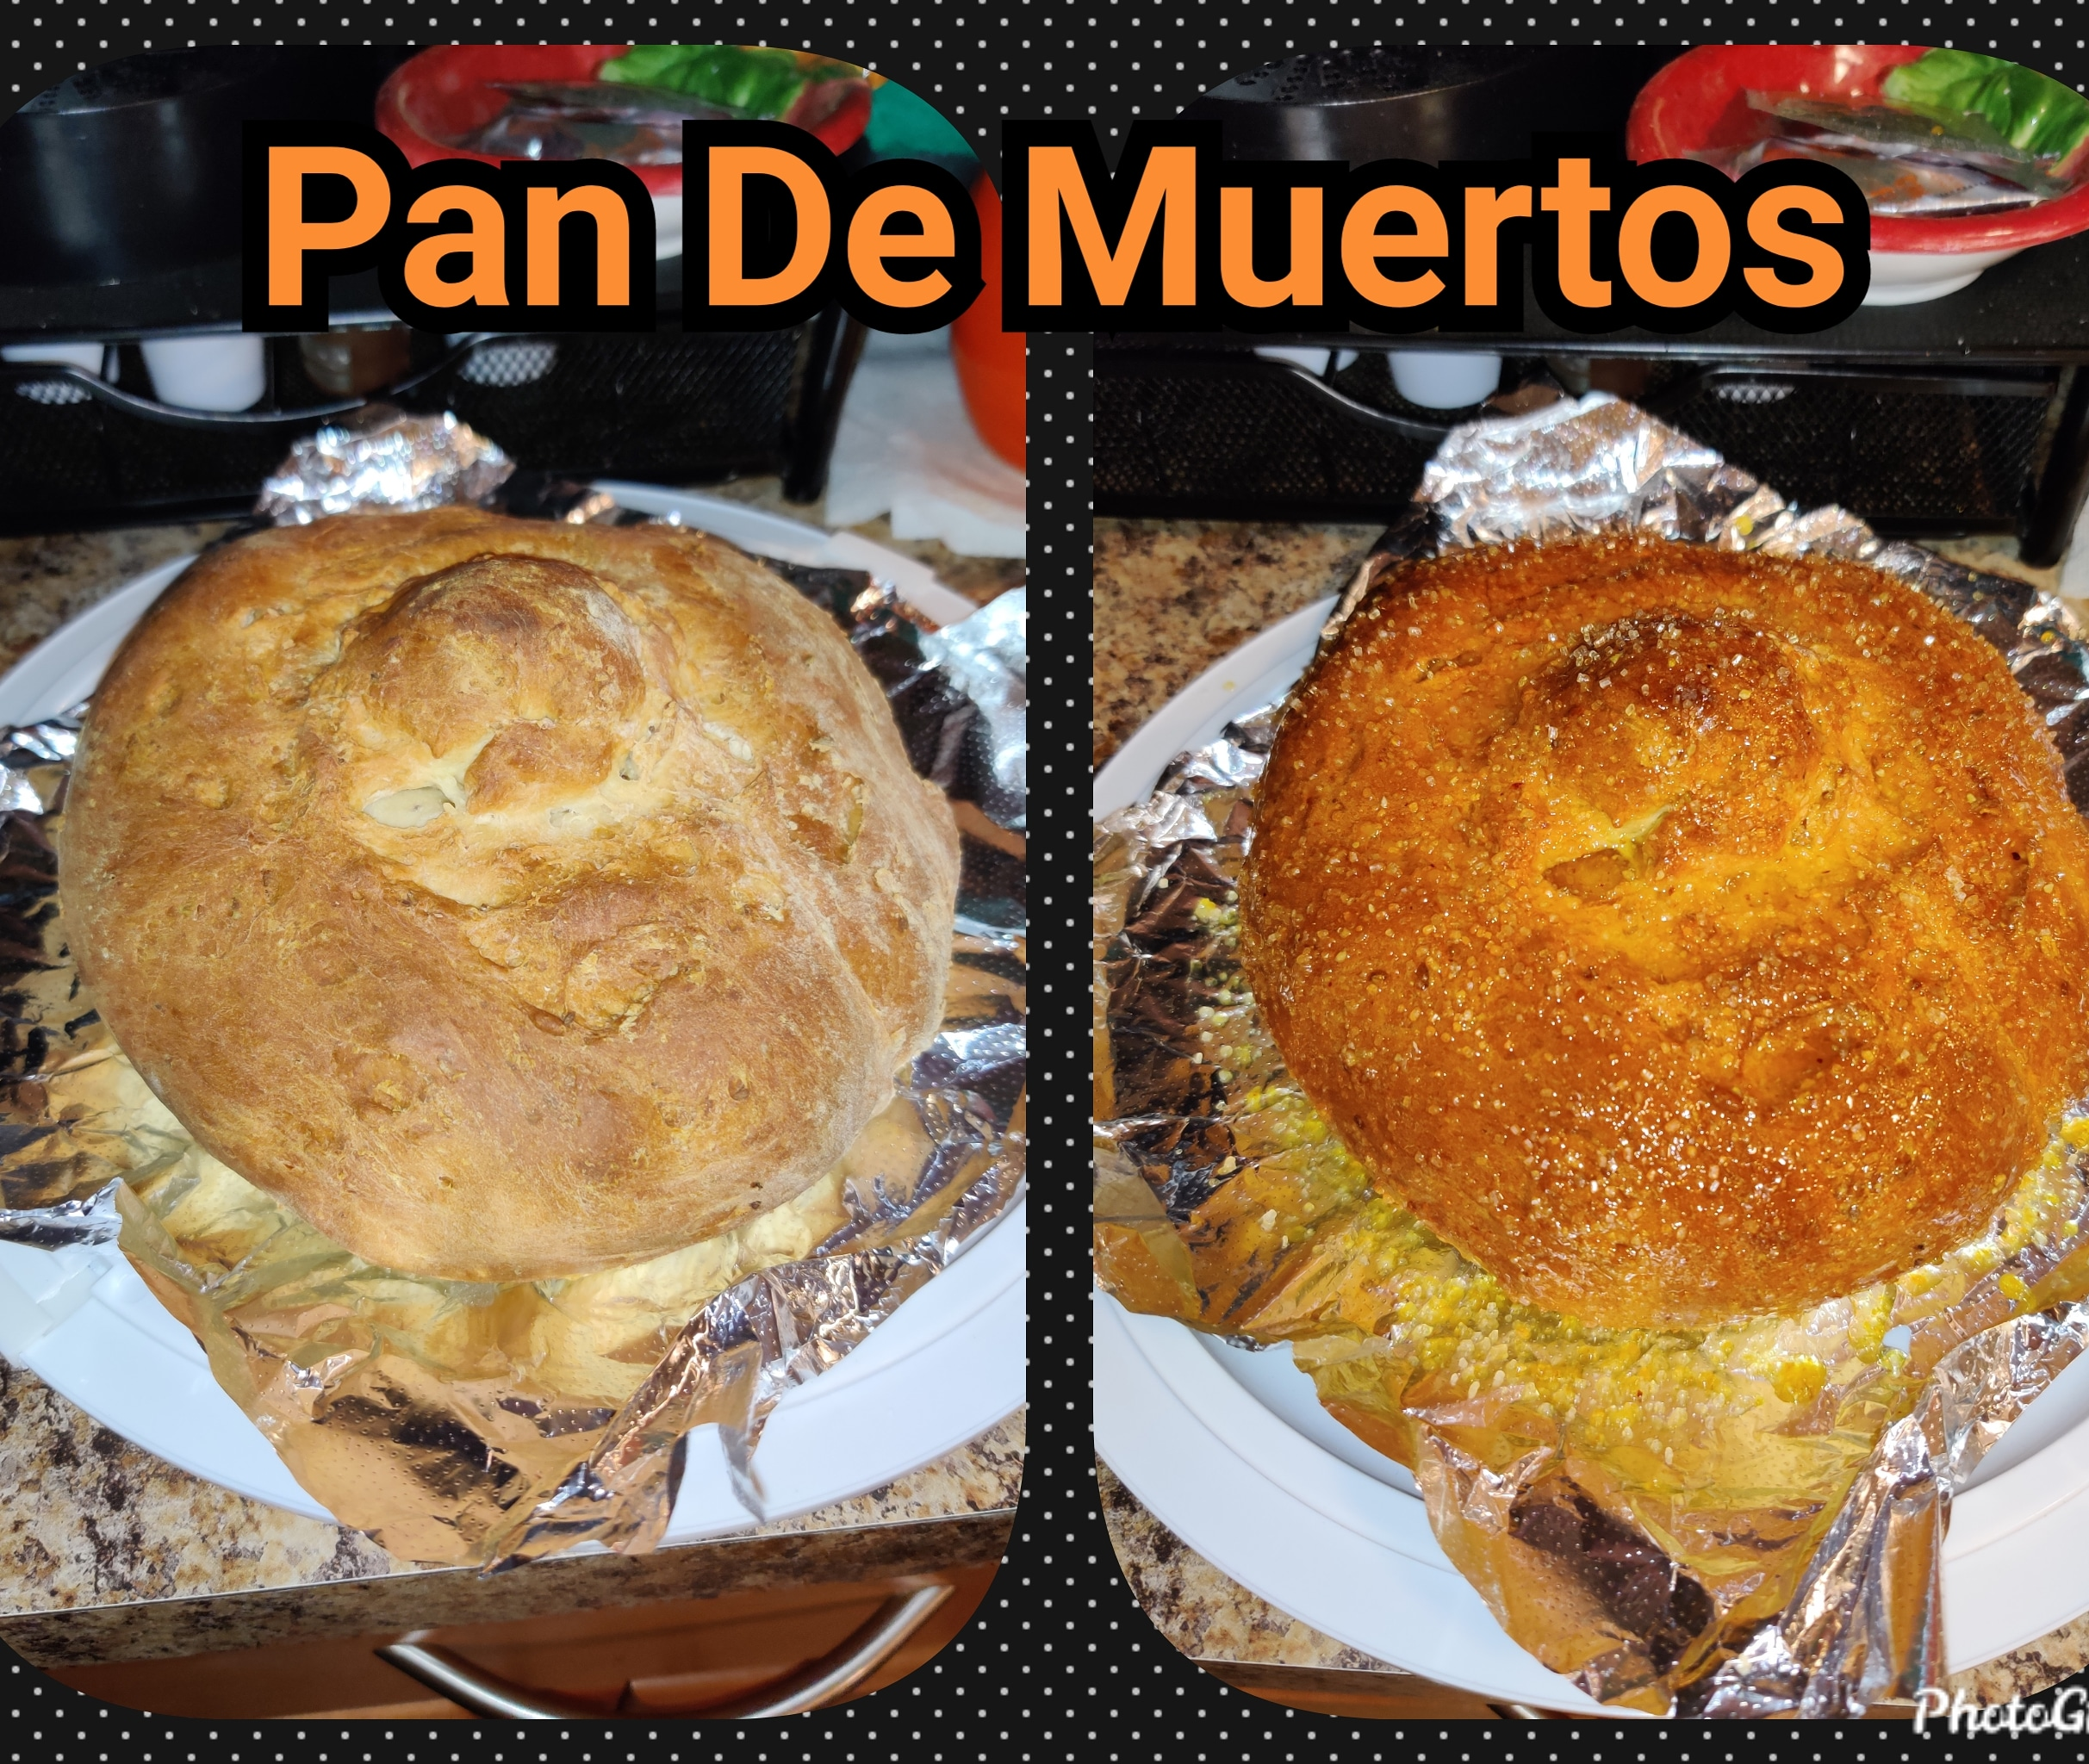 Pan de Muertos (Mexican Bread of the Dead)